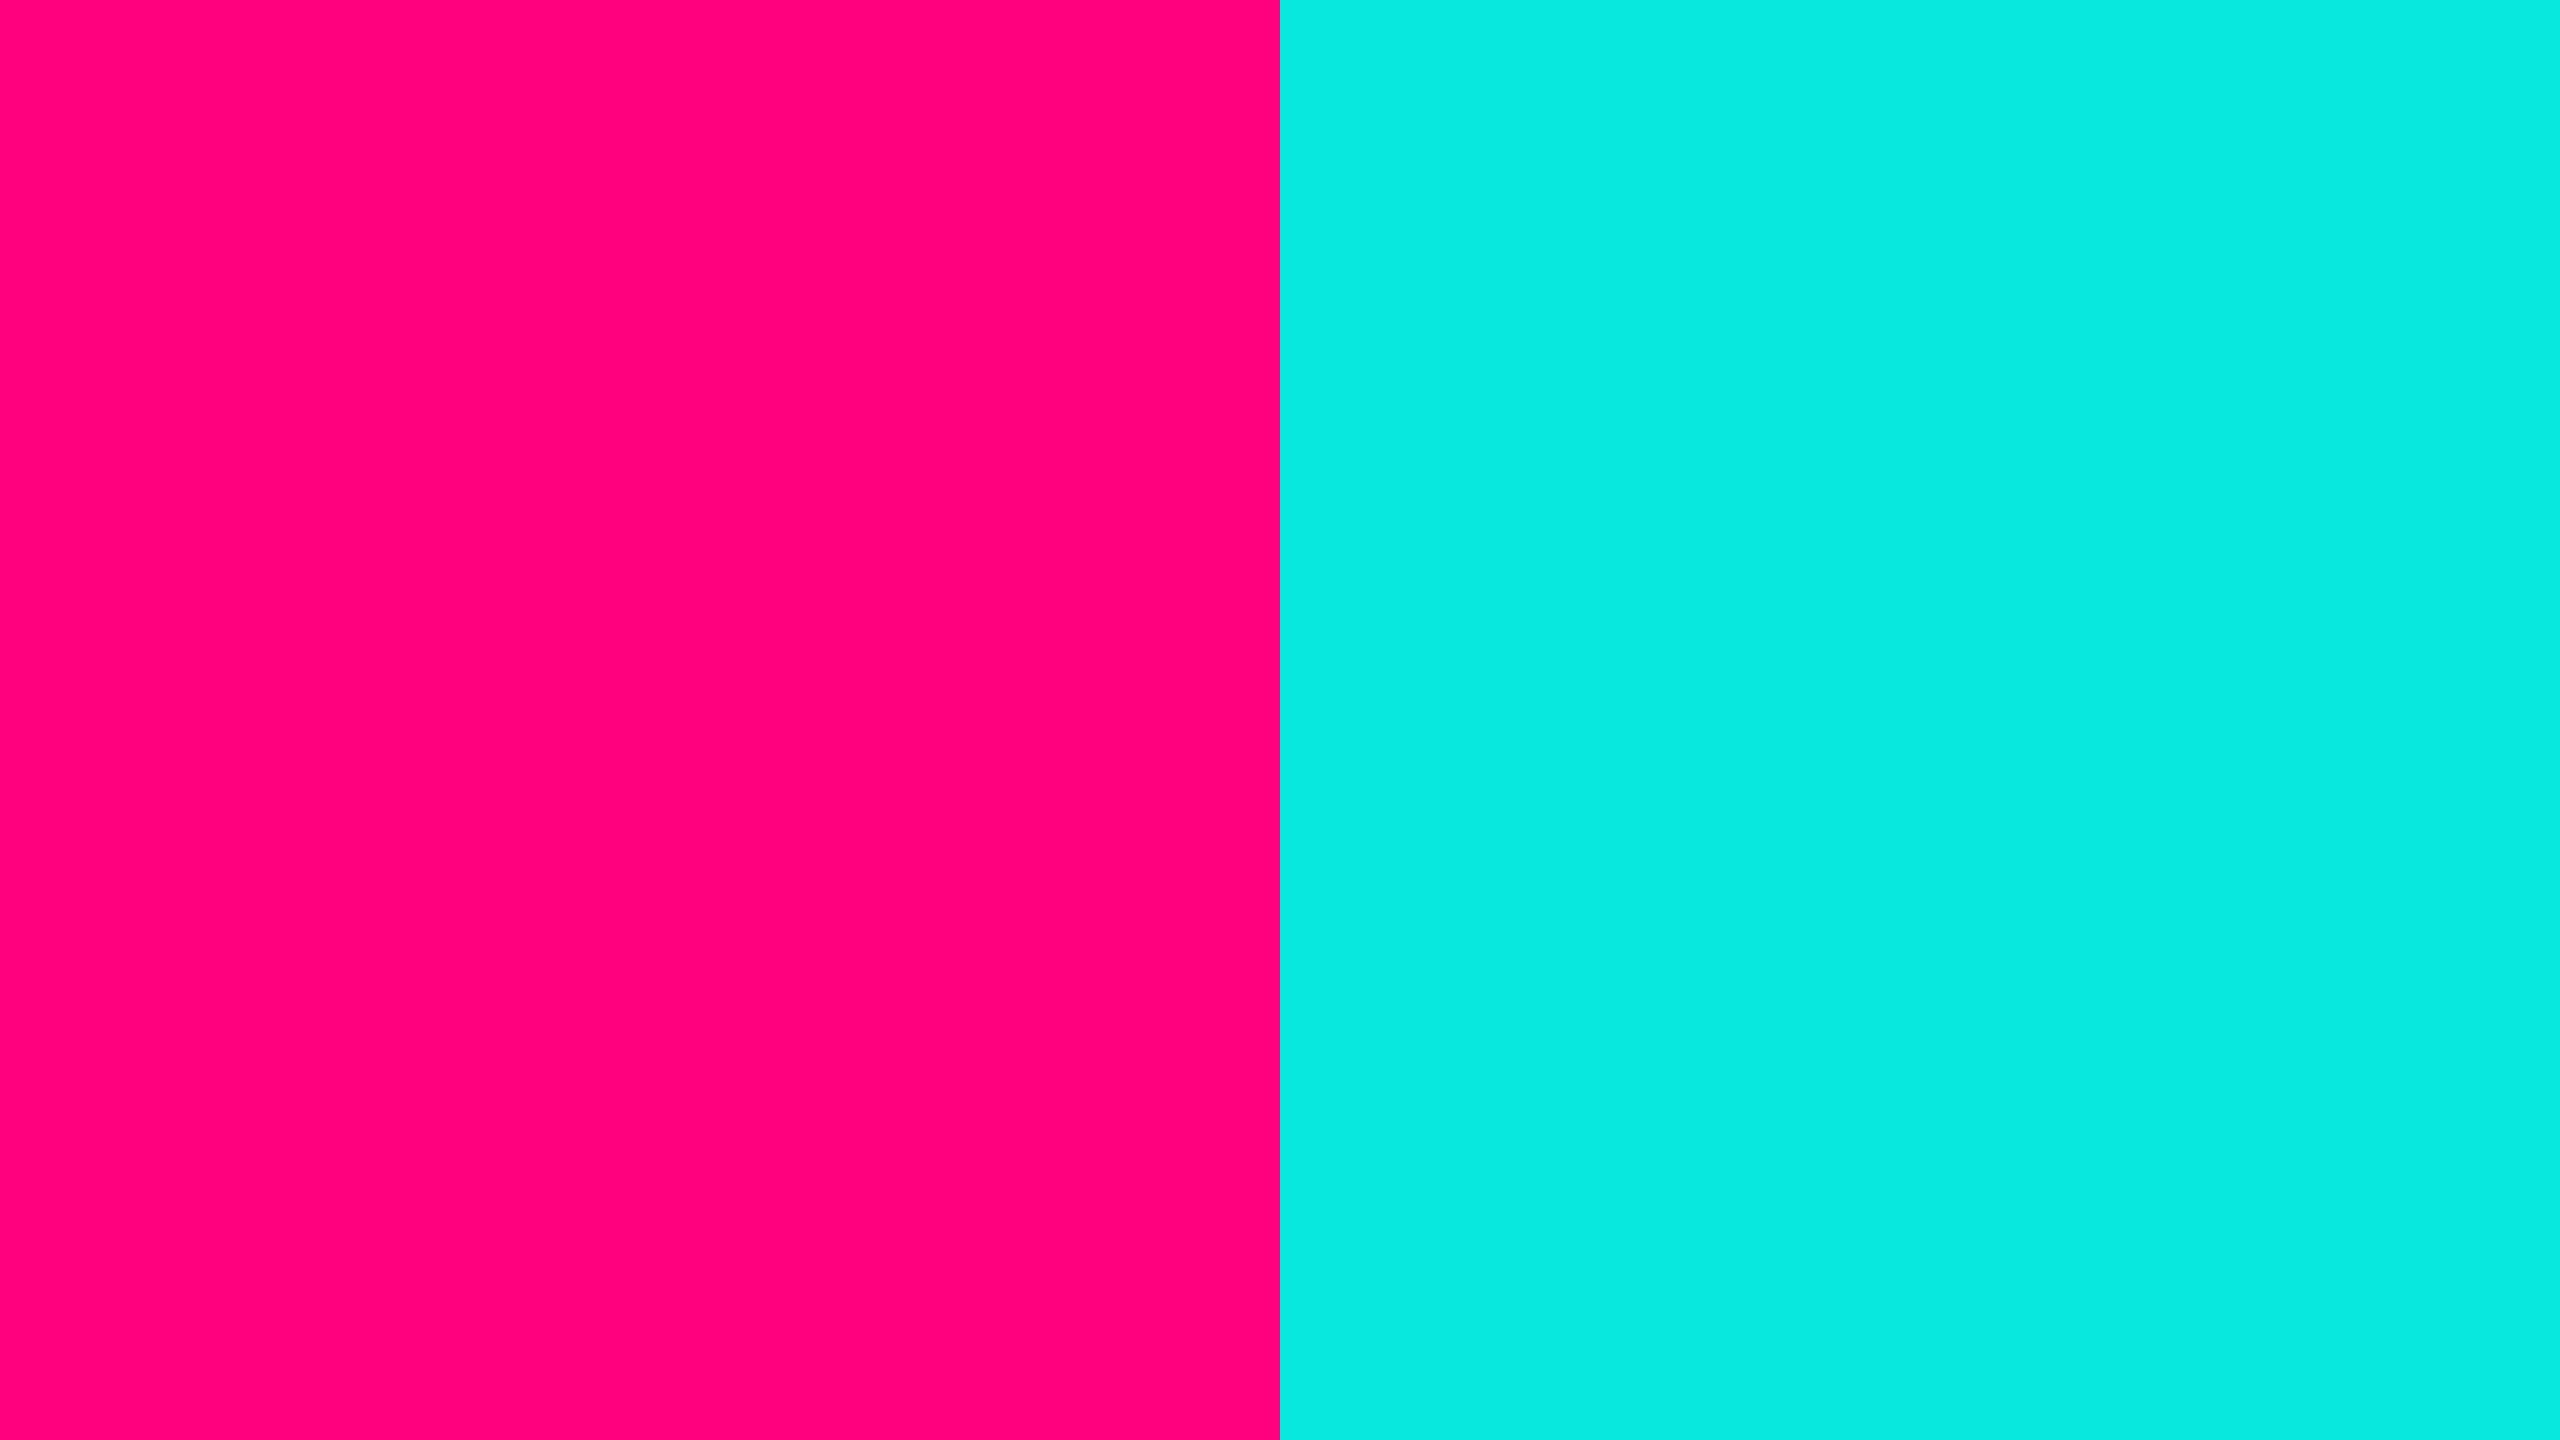 resolution Bright Pink and Bright Turquoise solid two color background .